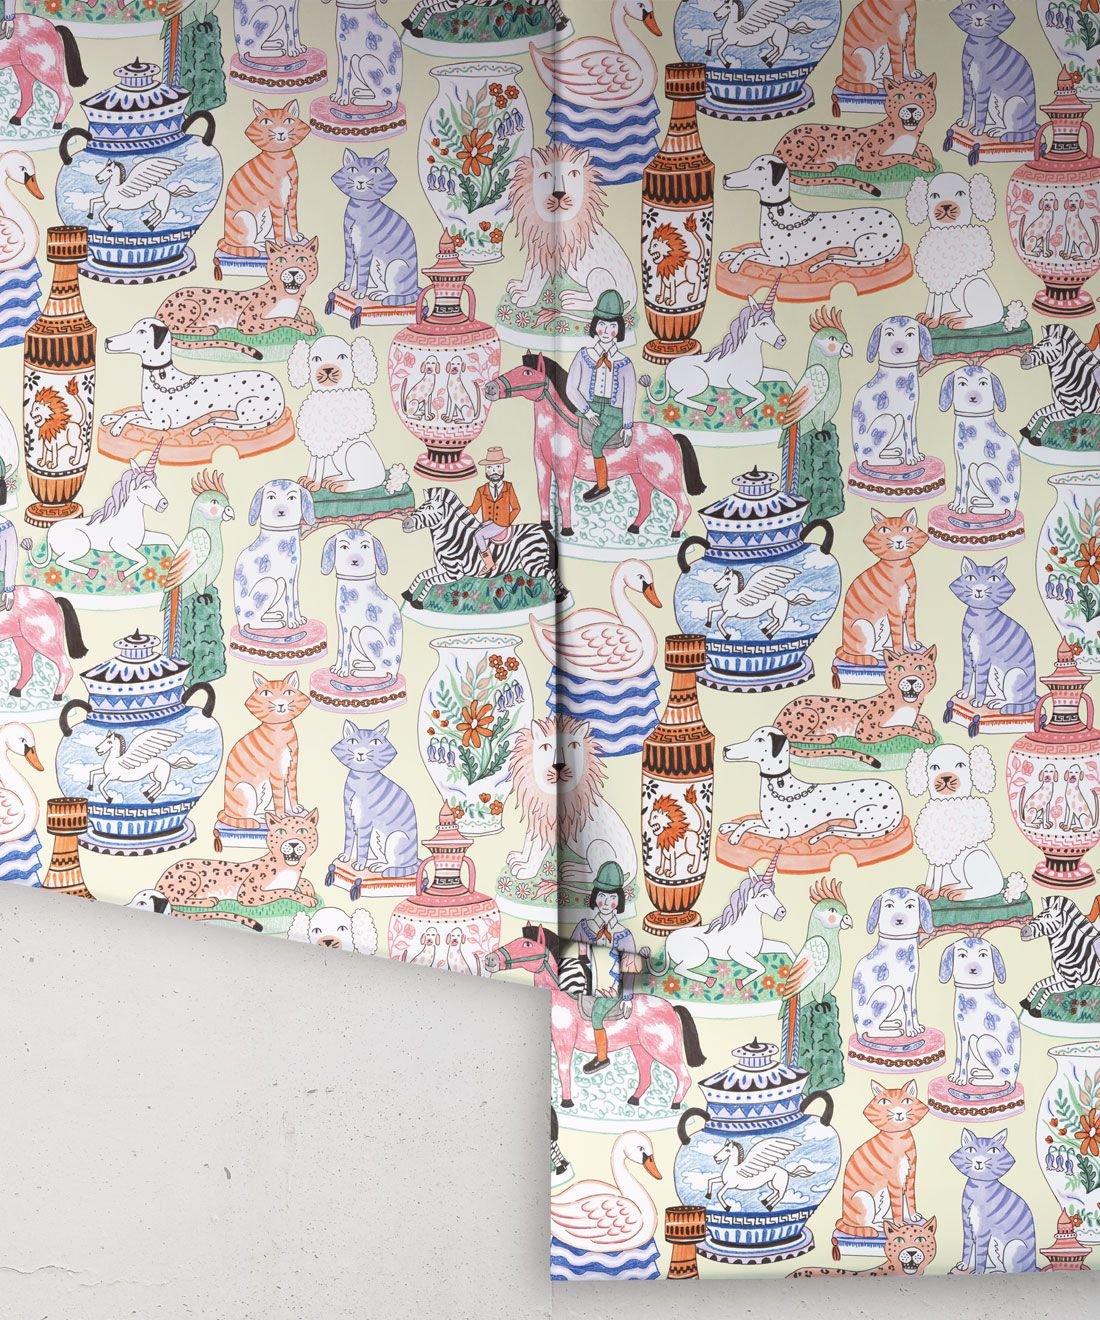 Ceramics Wallpaper featuring vases of dogs, cats, zebras, lions, parrots and unicorns rolls